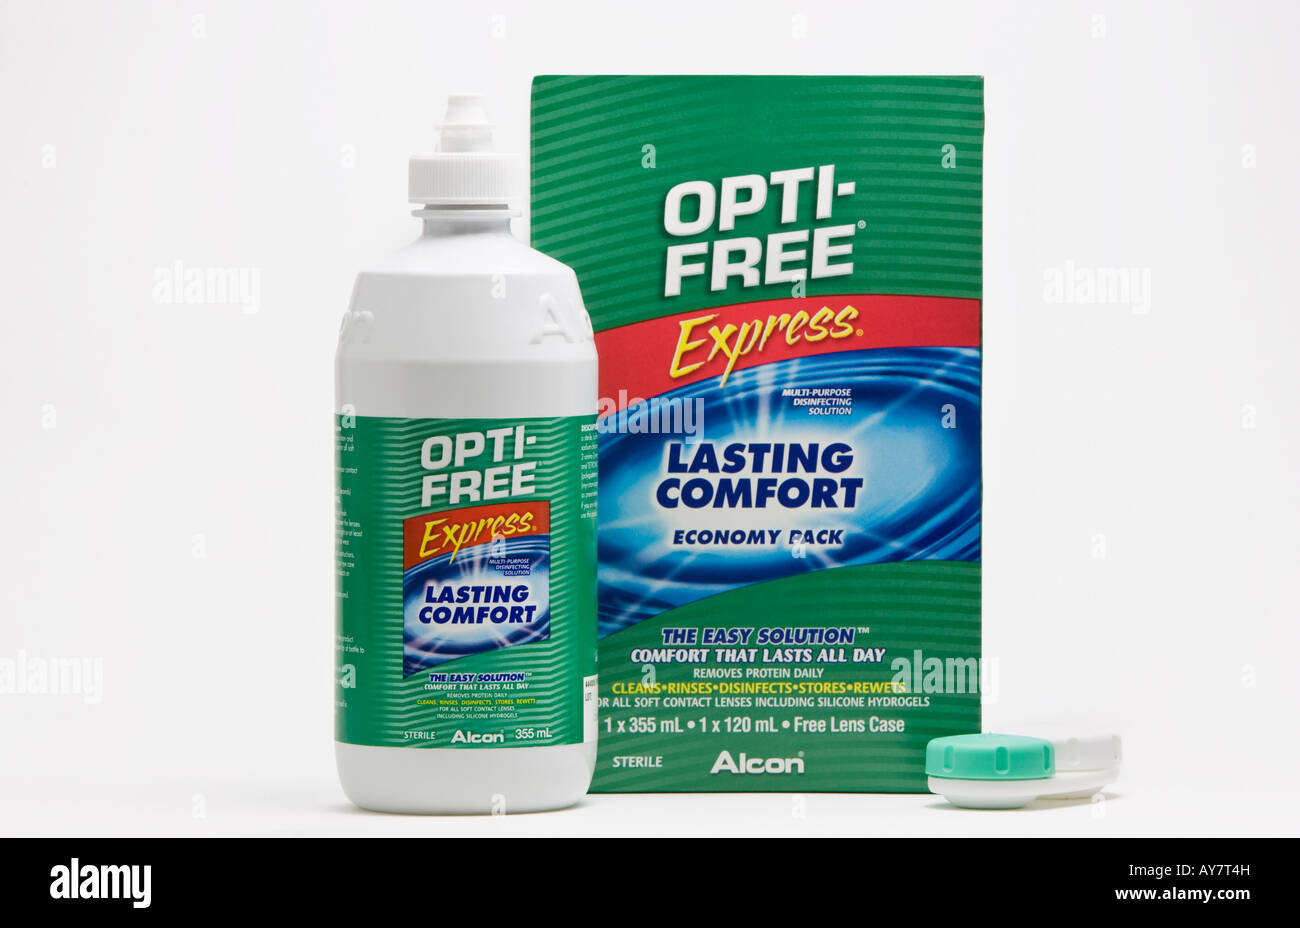 A box of Opti-Free Express contact lens solution alongside a bottle and contact lens storage case.  sc 1 st  Alamy & A box of Opti-Free Express contact lens solution alongside a bottle ...